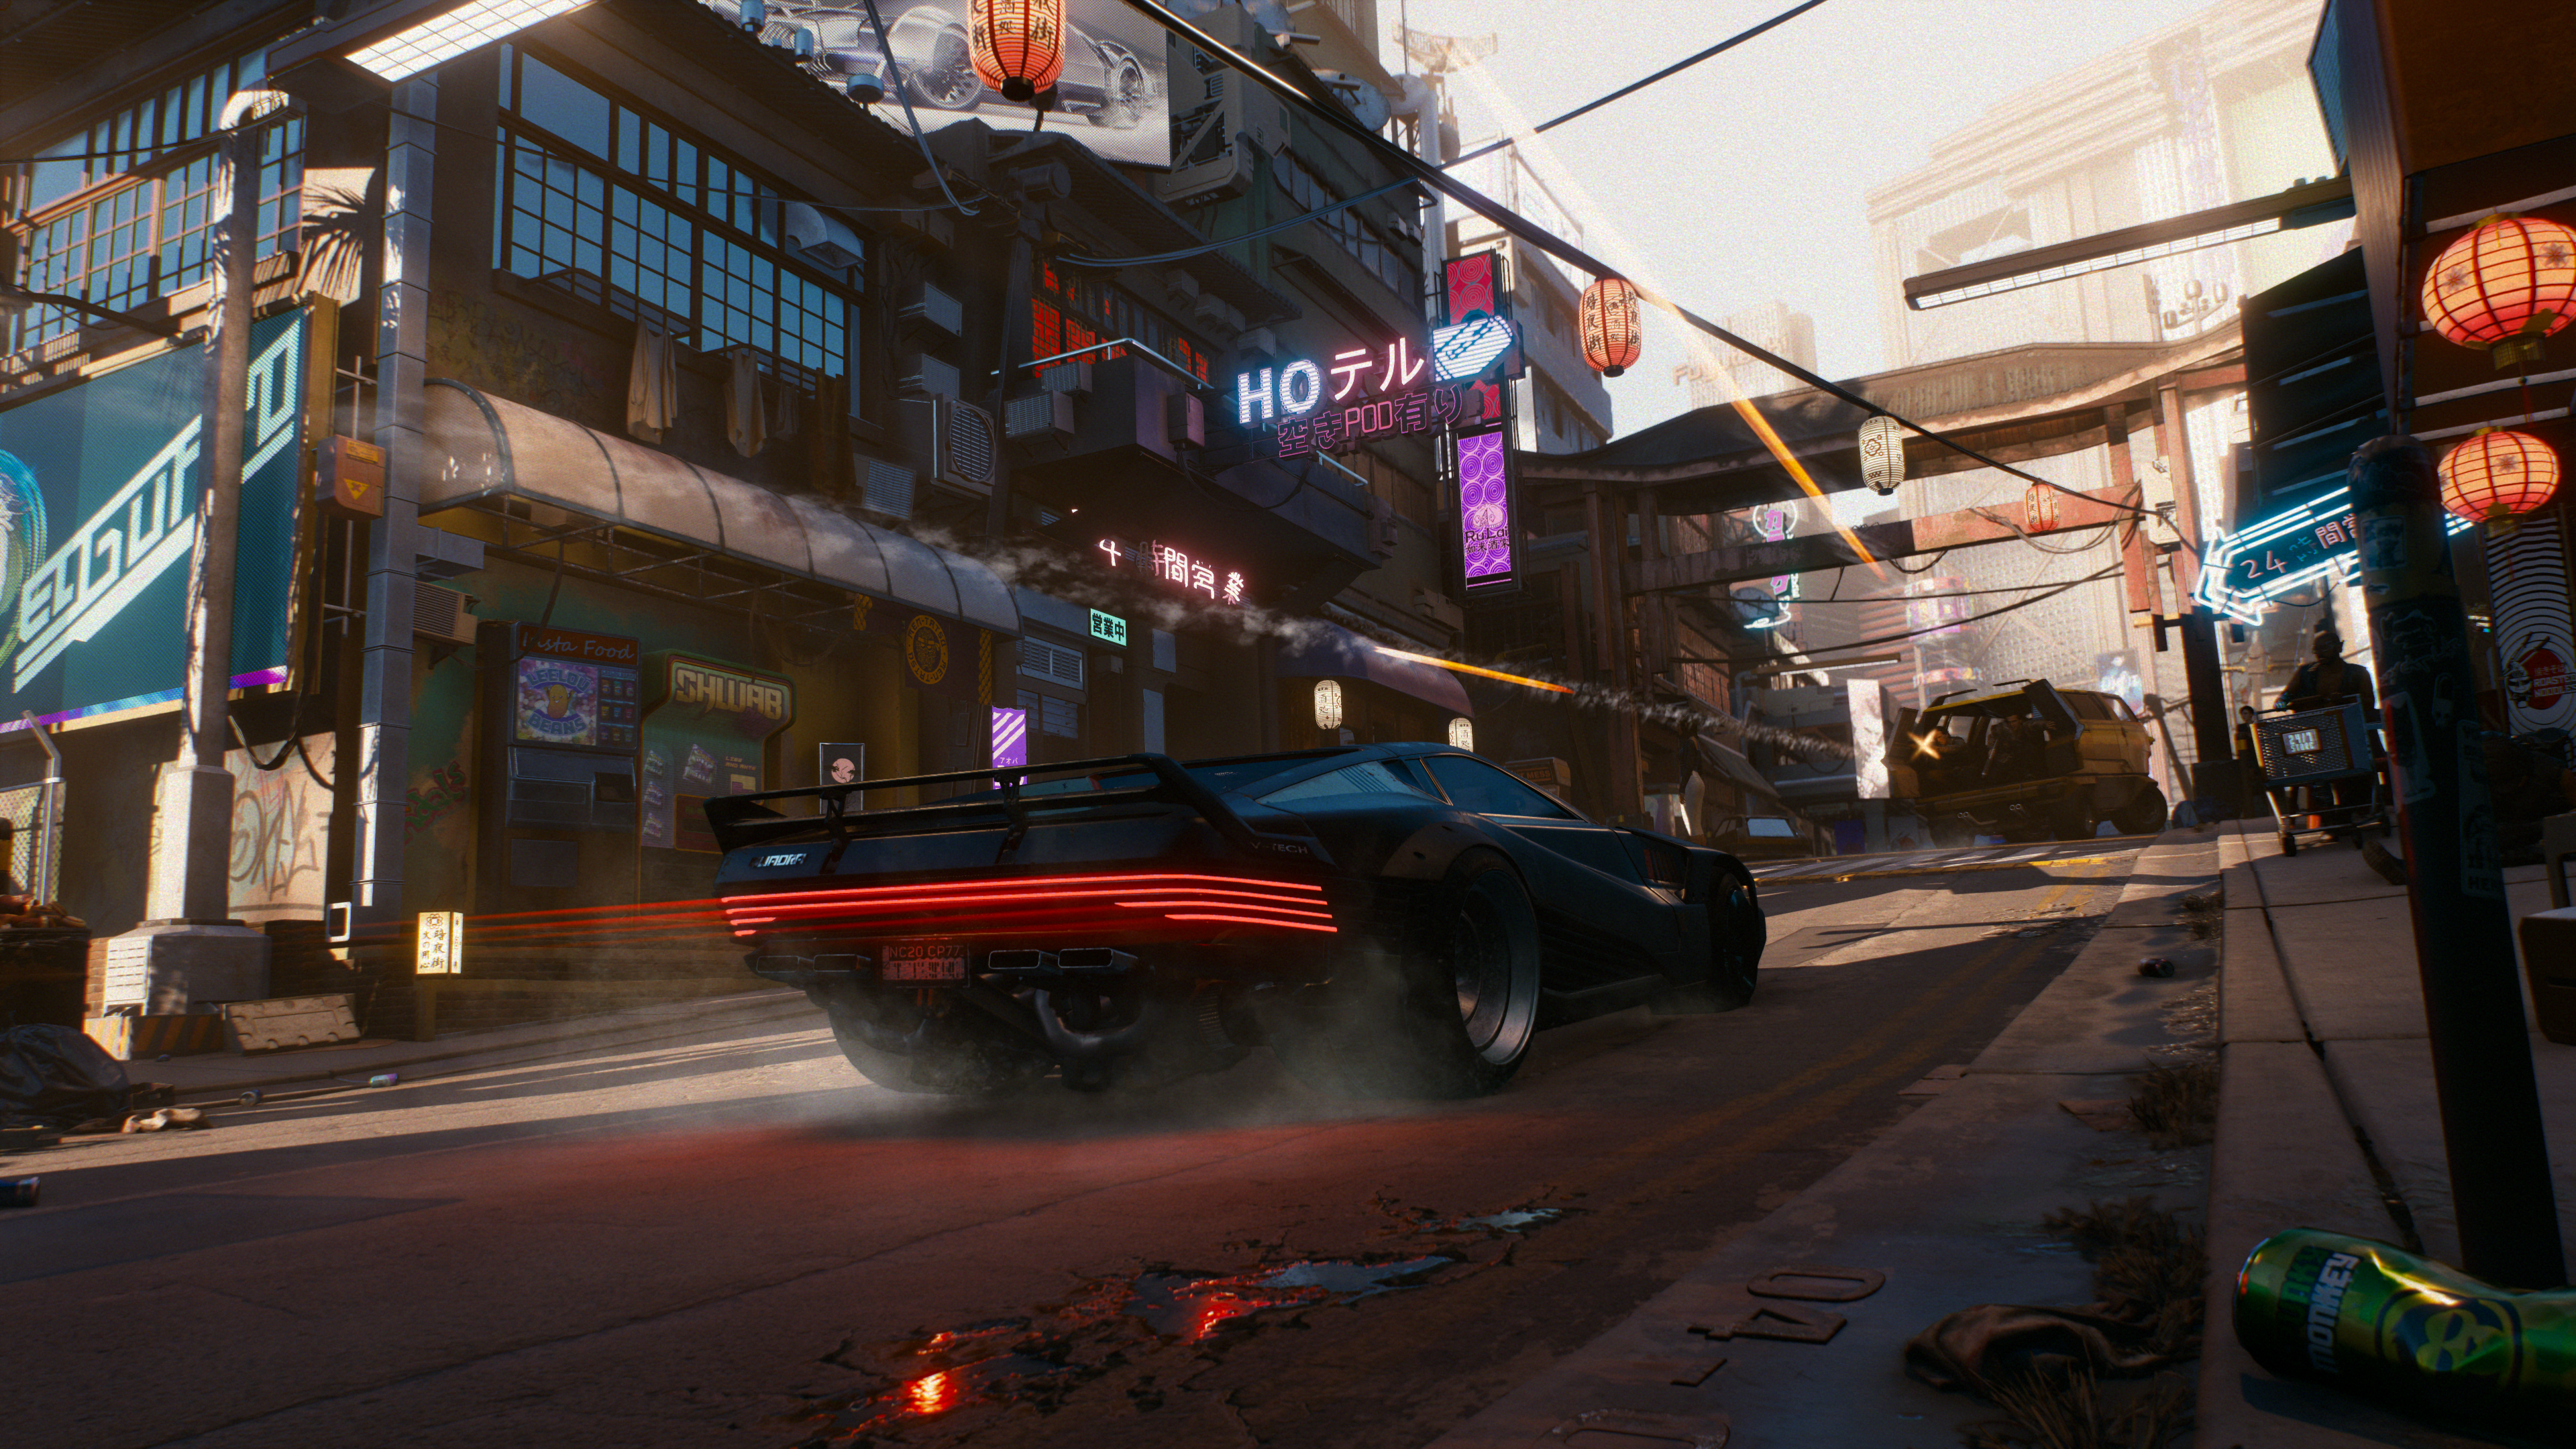 Cyberpunk 2077 - Blade Runner vehicles?